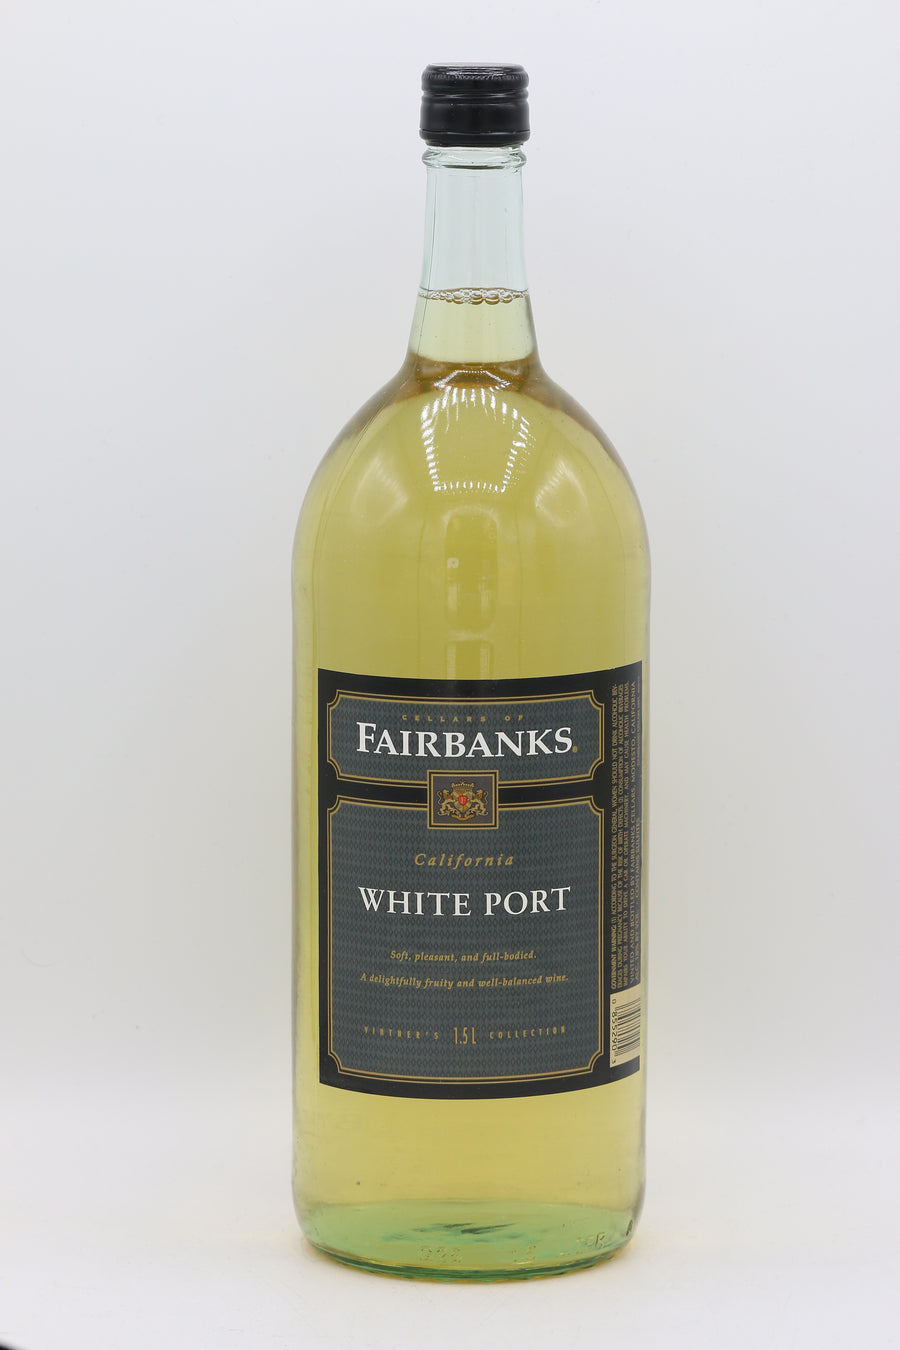 FAIRBANKS WHITE PORT 1.5L